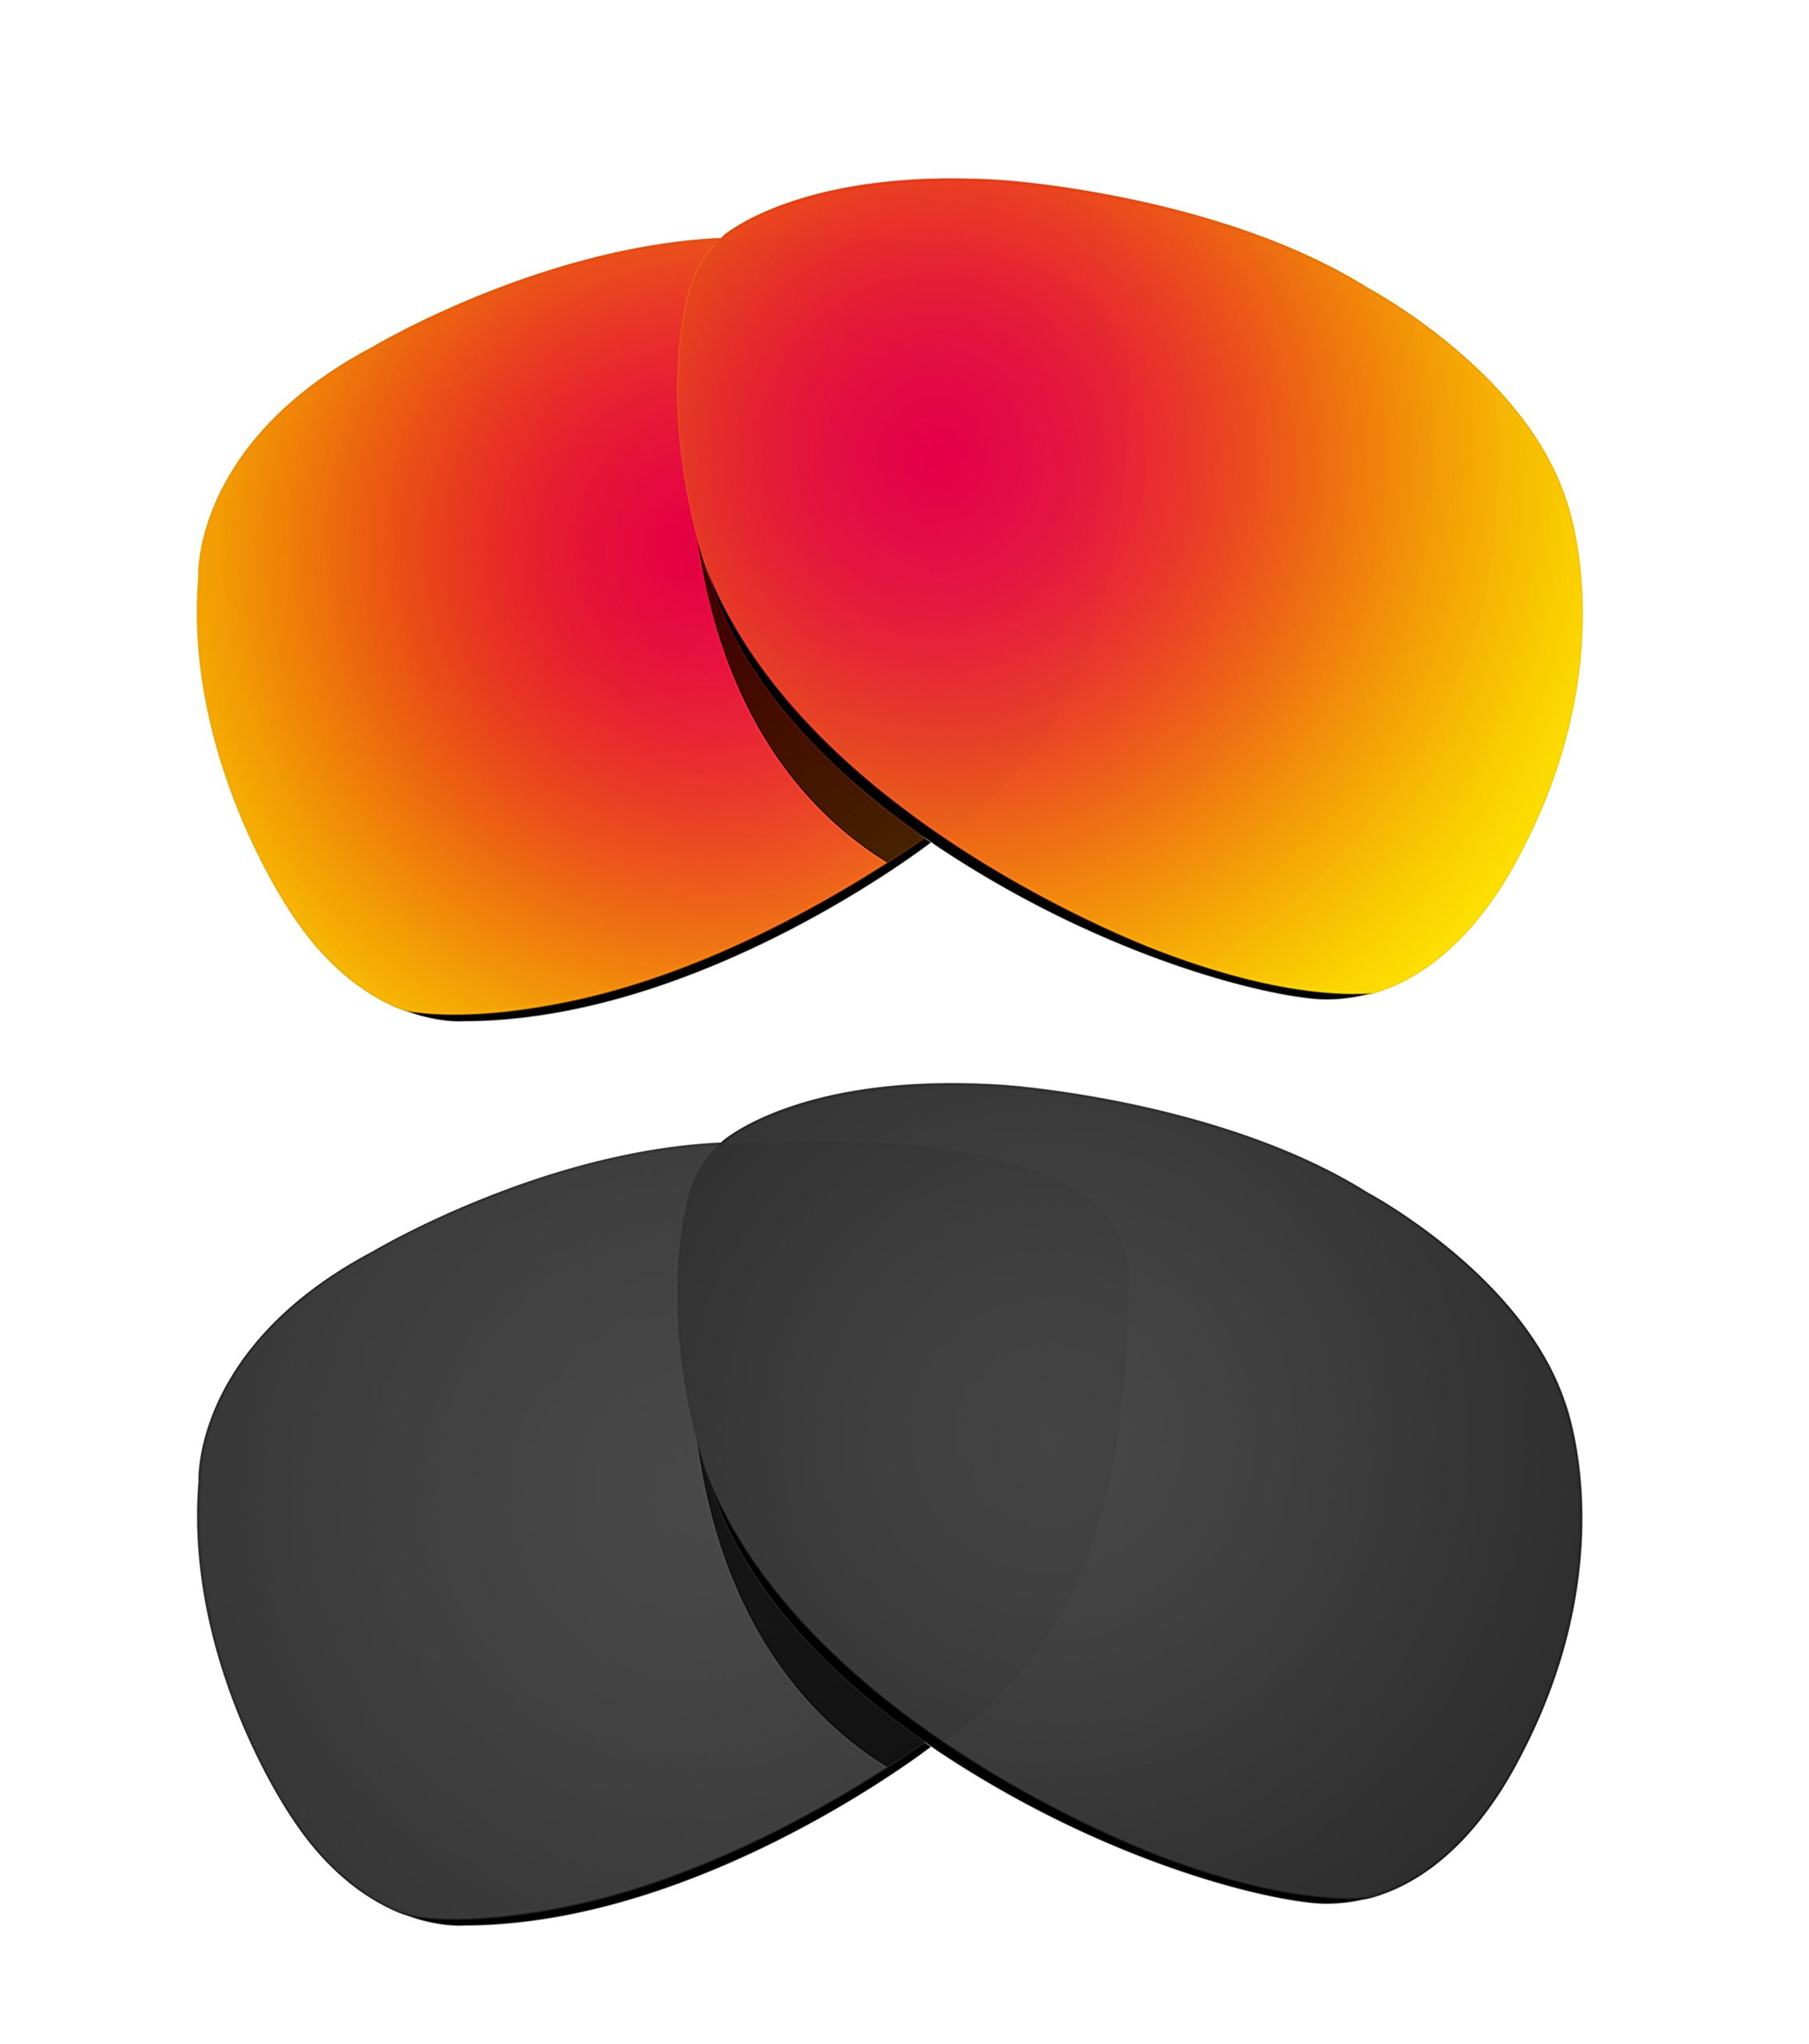 Littlebird4 2 Pairs 1.5mm Polarized Replacement Lenses for Oakley Crosshair Sunglasses - Multiple Options (Black+Fire Red)